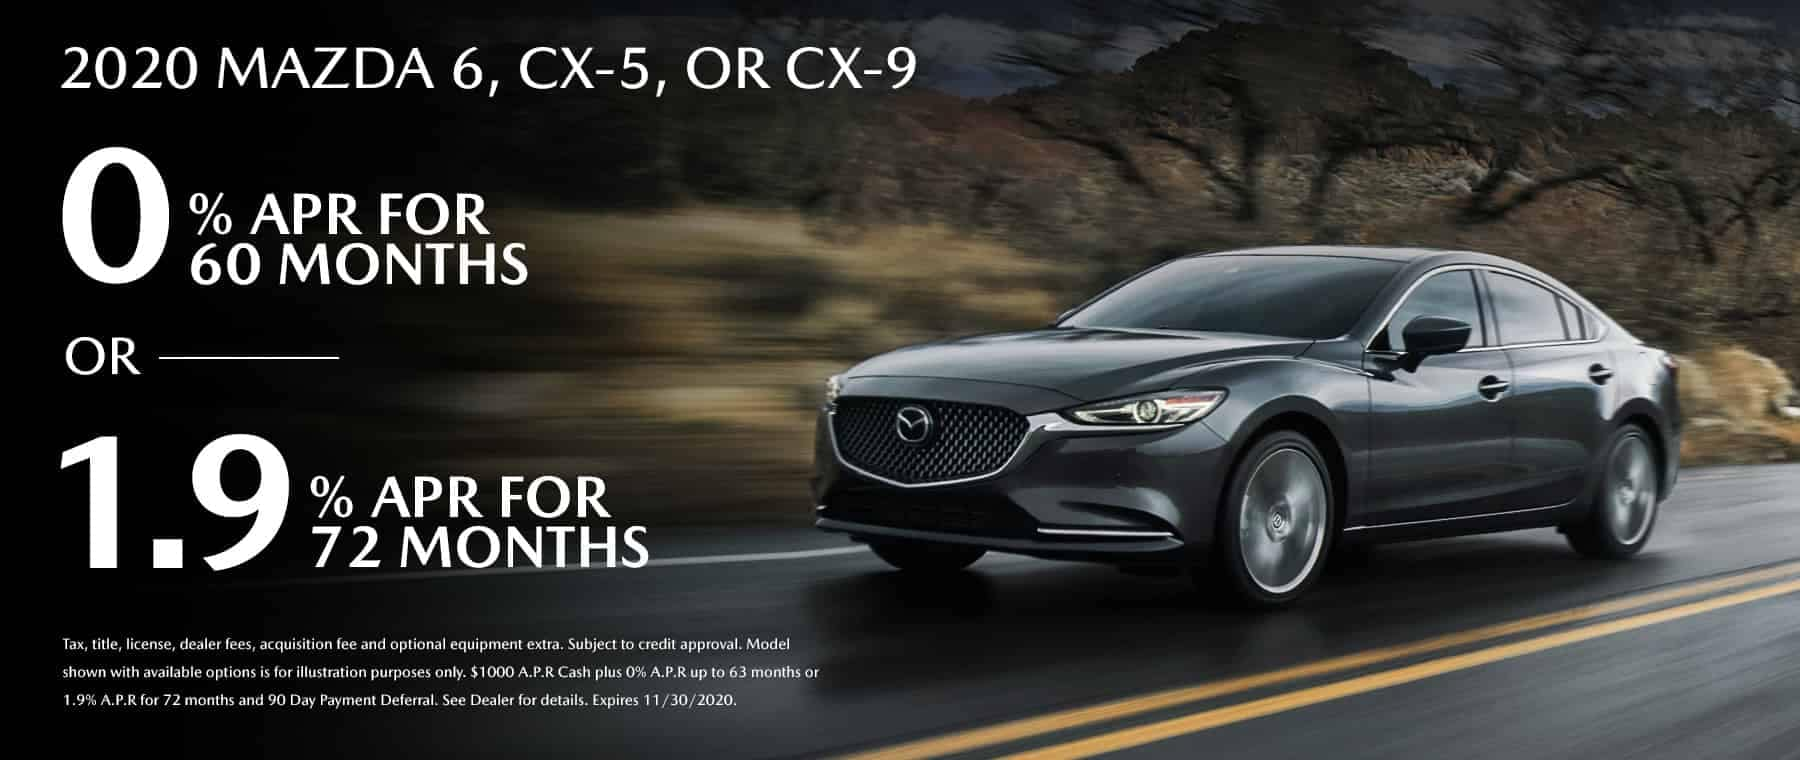 0% for 60 months on new Mazda 6, CX-5, CX-9